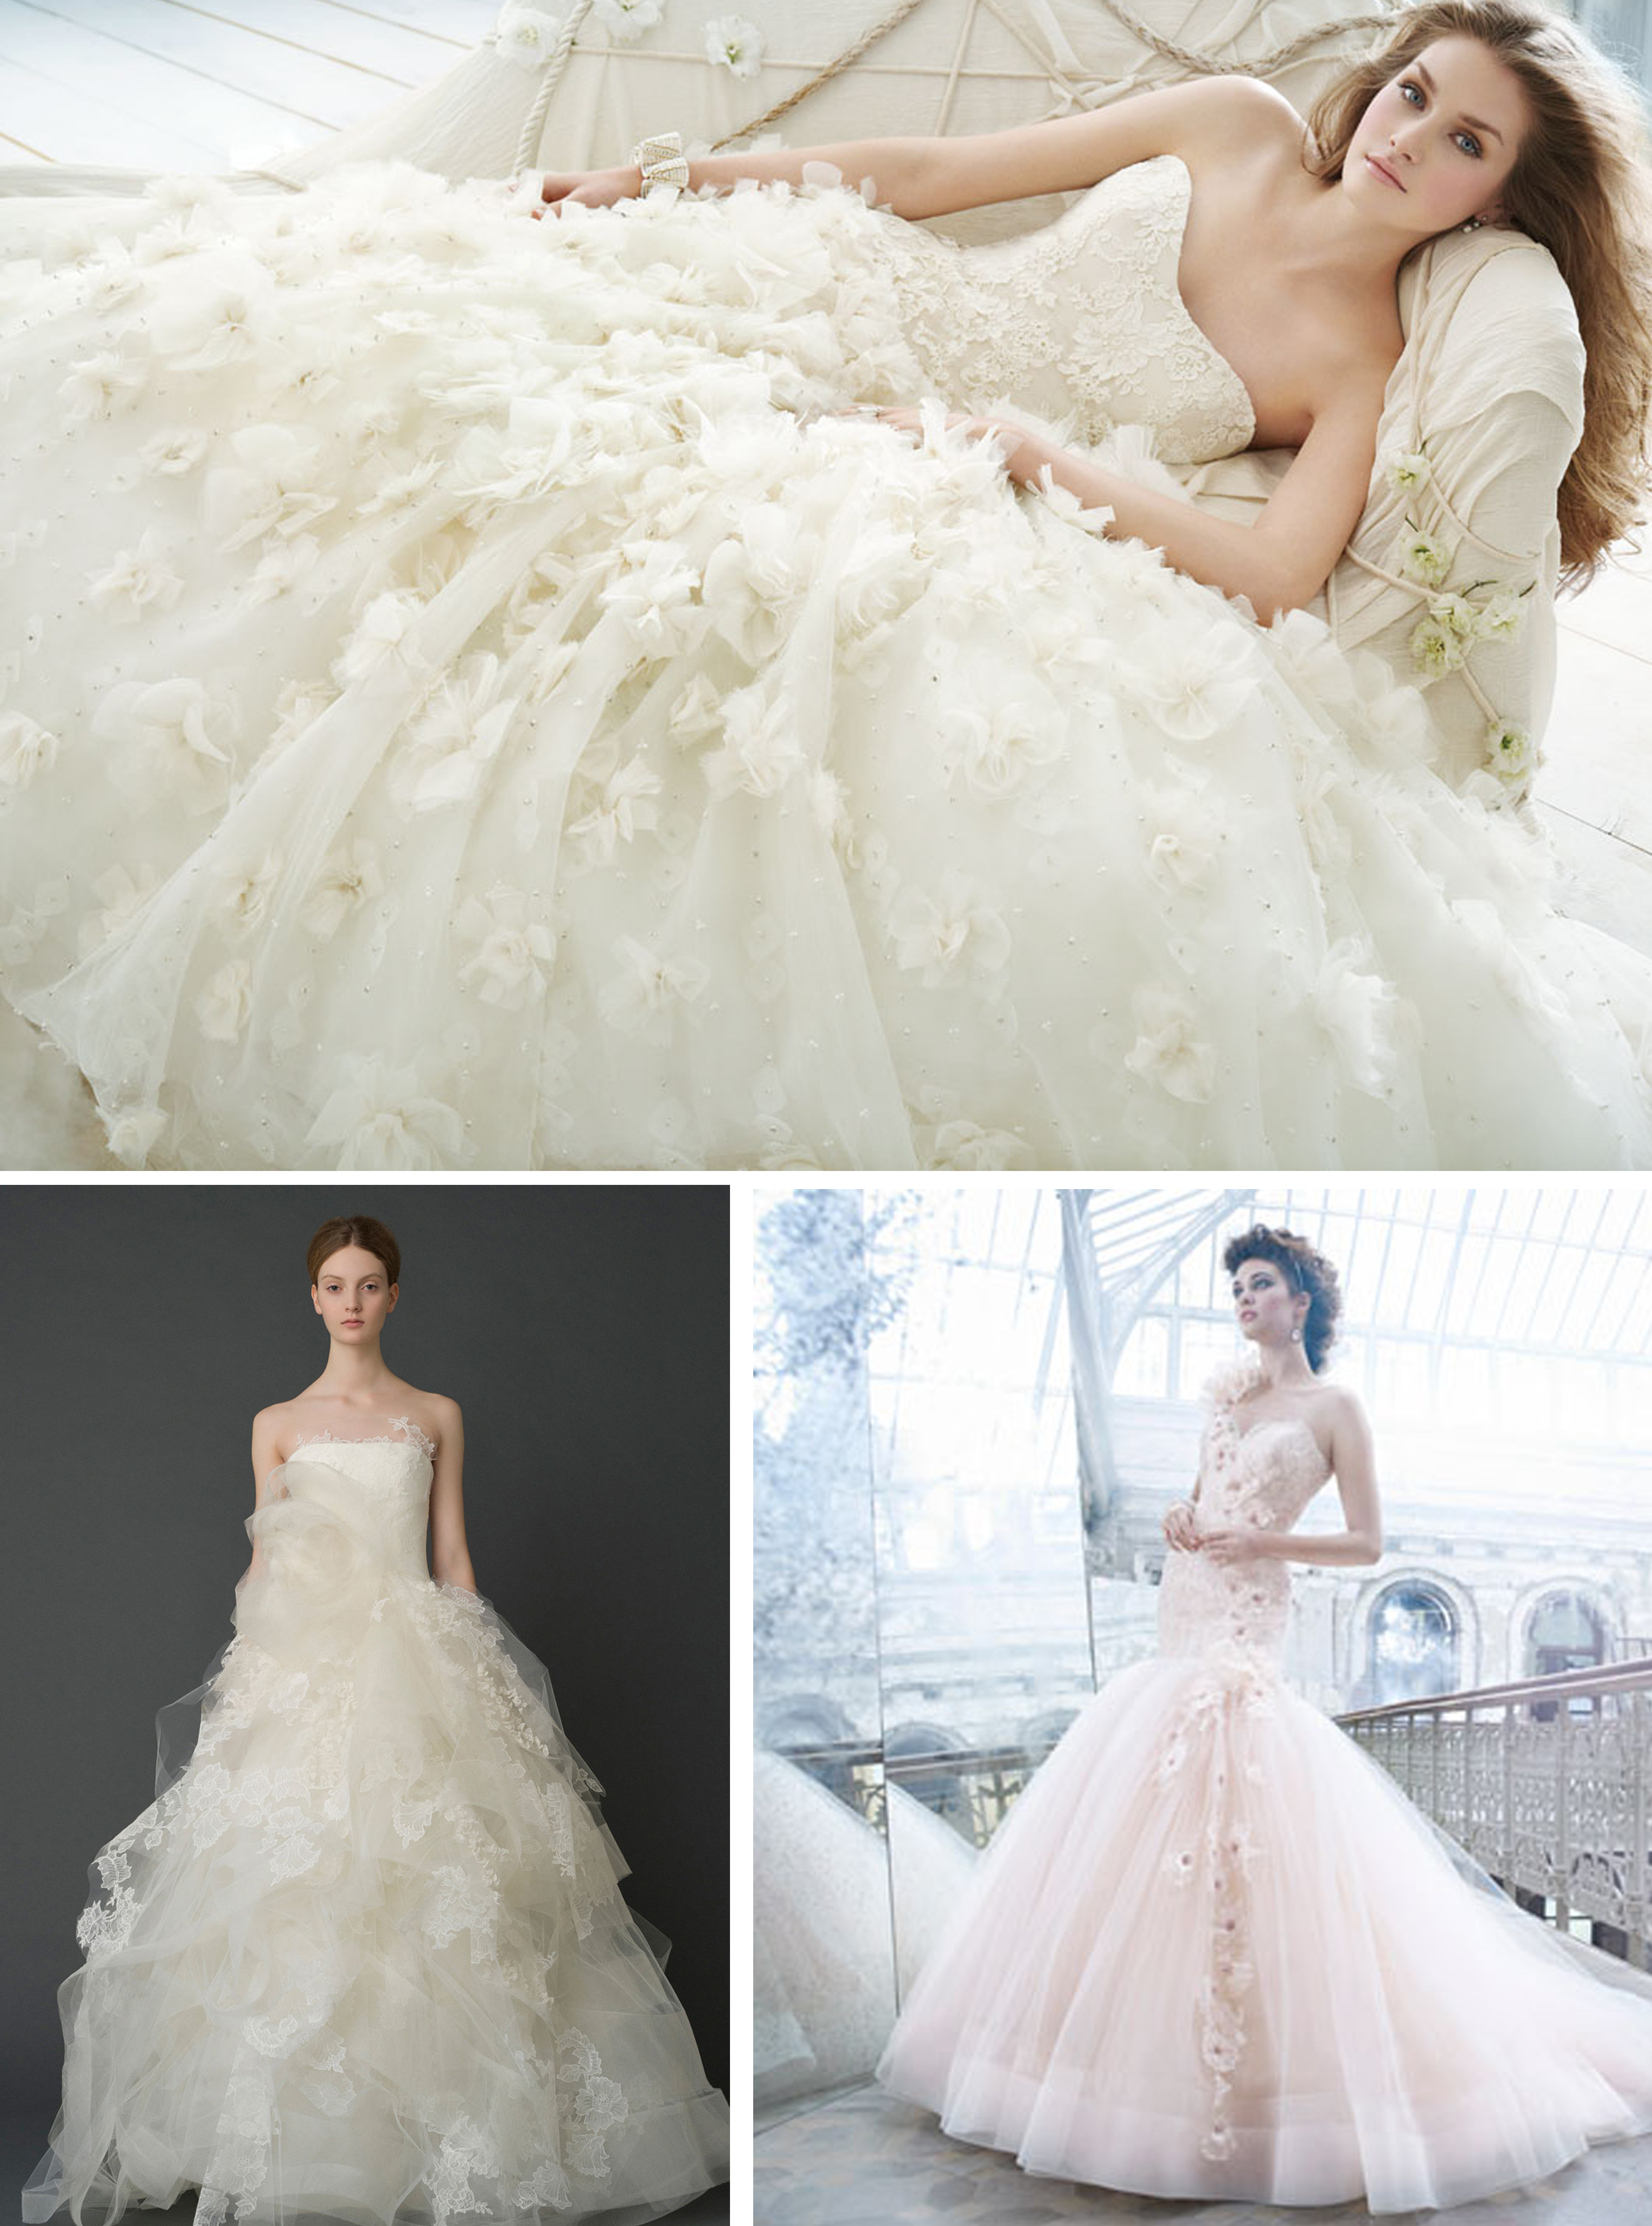 Shop as well Vestidos Para Madrinas likewise Shop likewise Wedding Dresses Designer Names furthermore What Black Women Need To Know About Mammograms. on oscar de la renta china prices